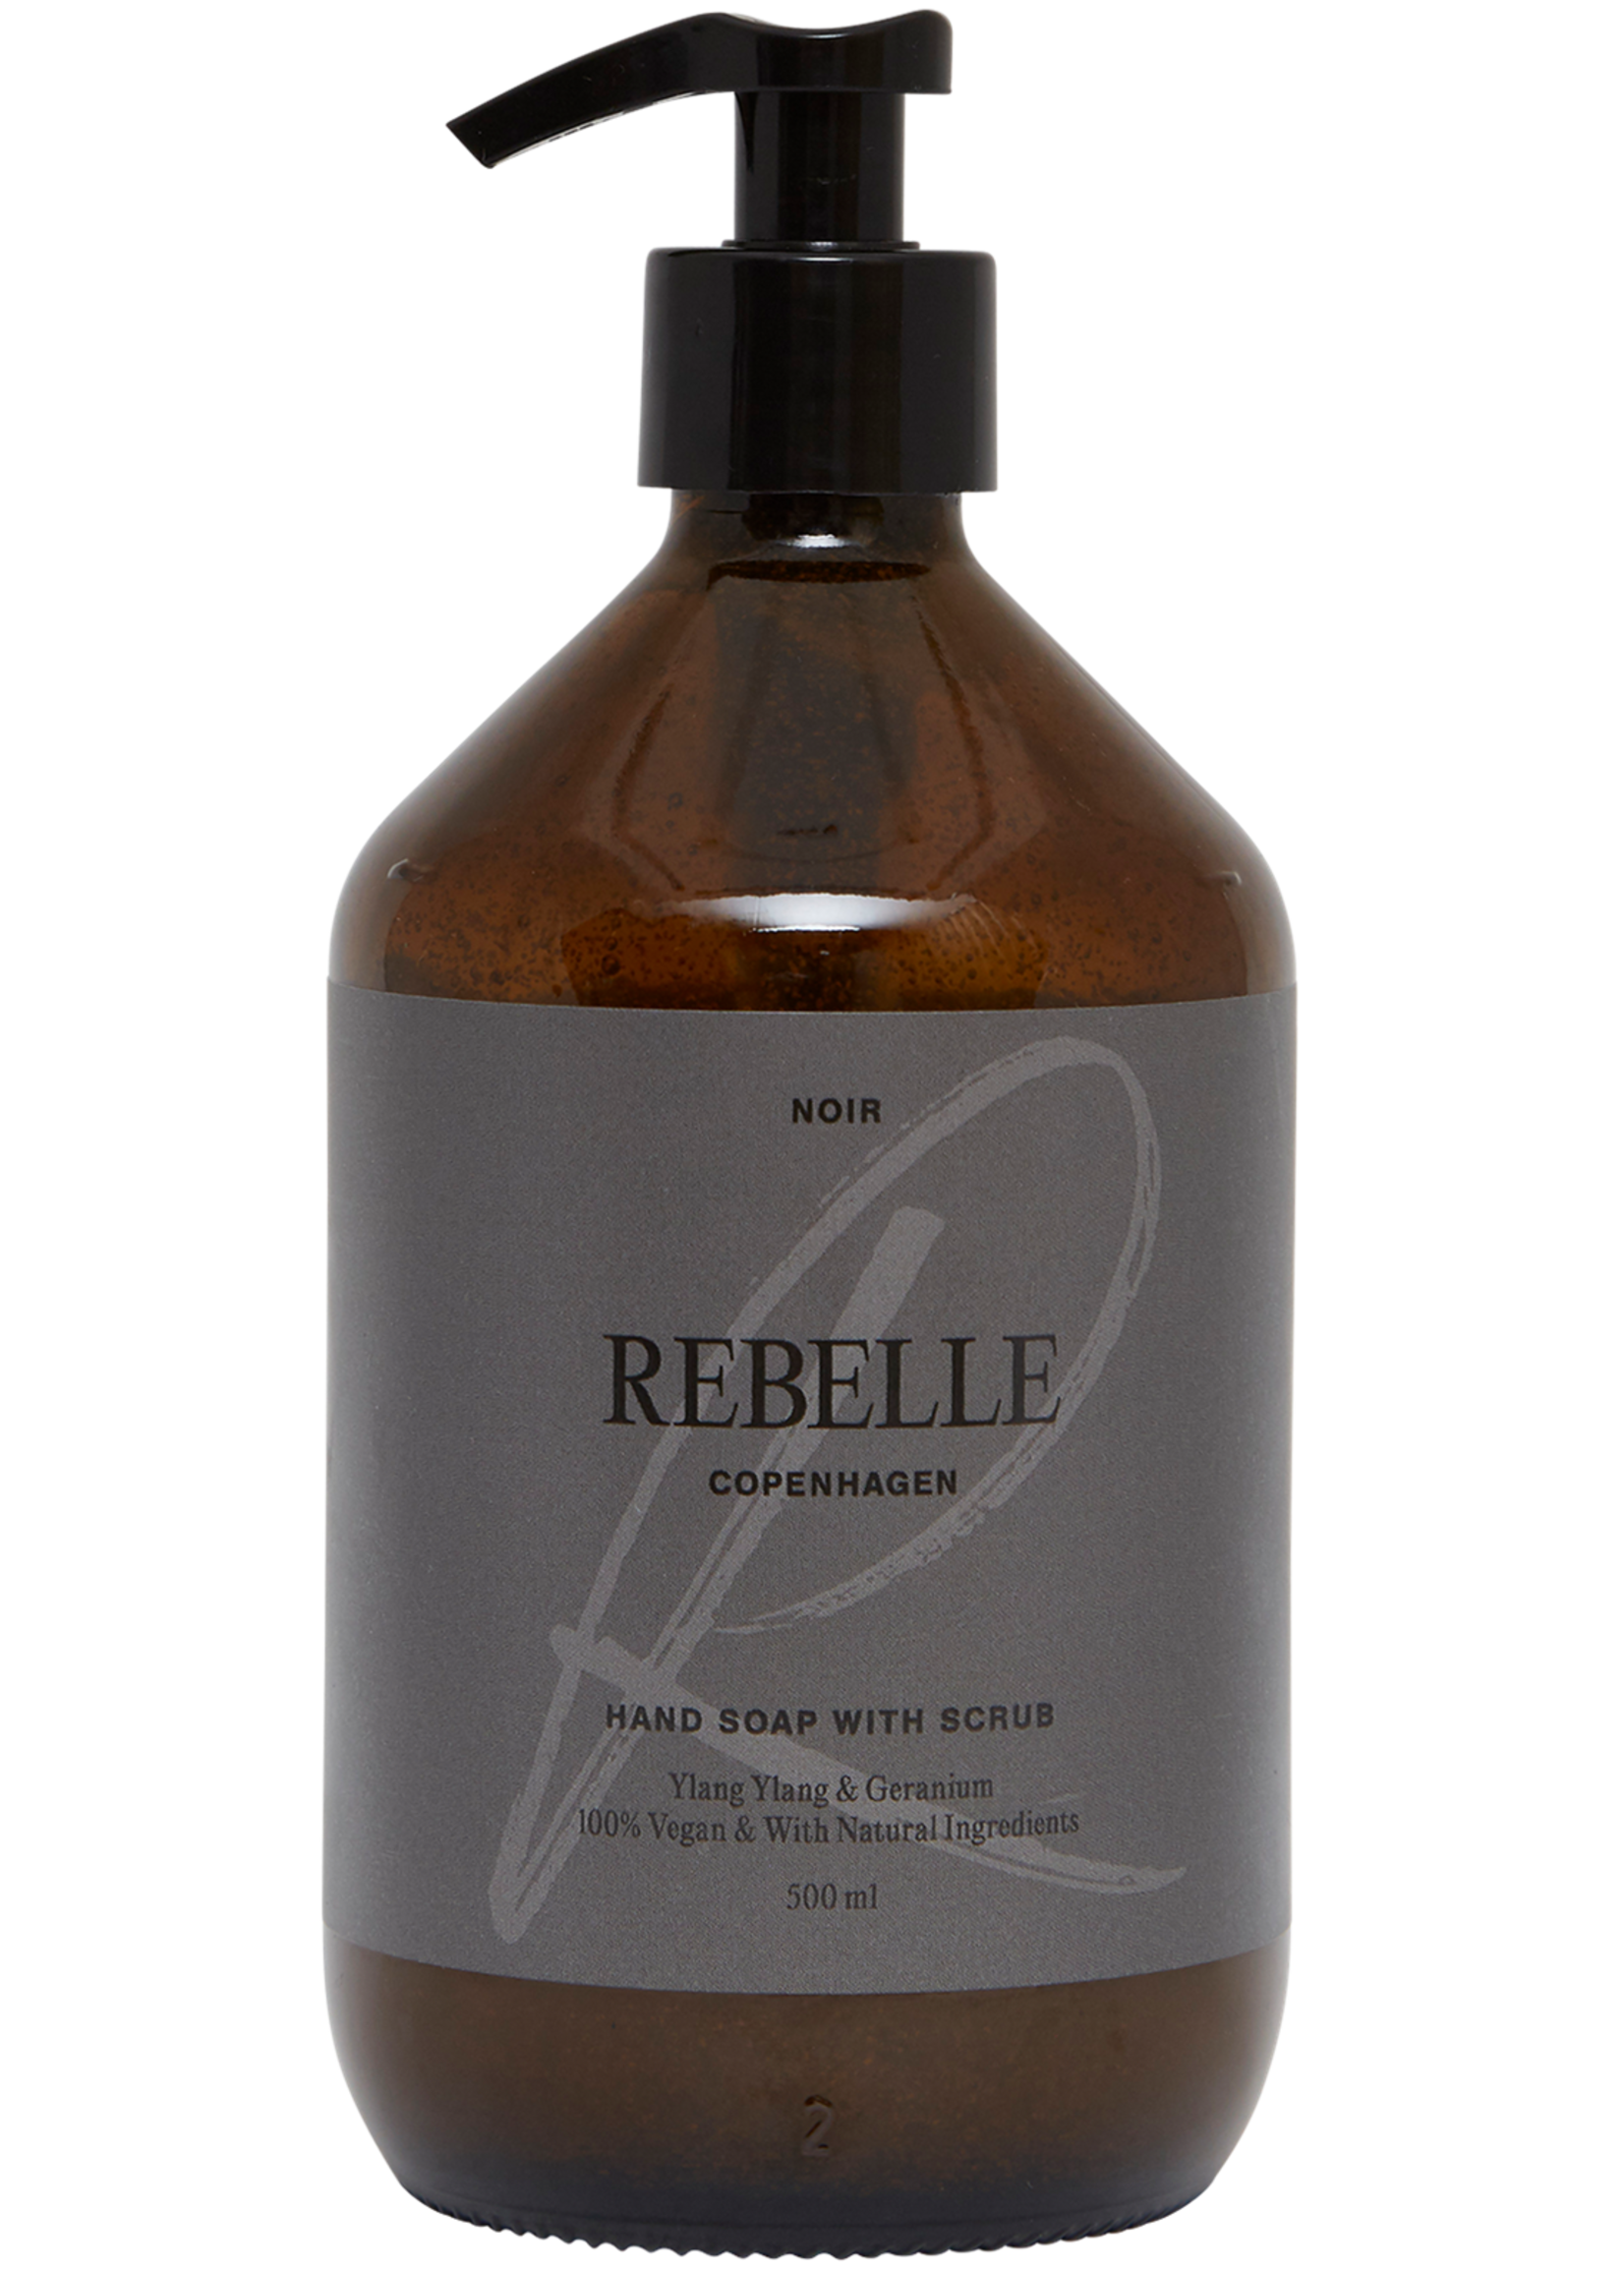 Rebelle Hand Soap with Scrub